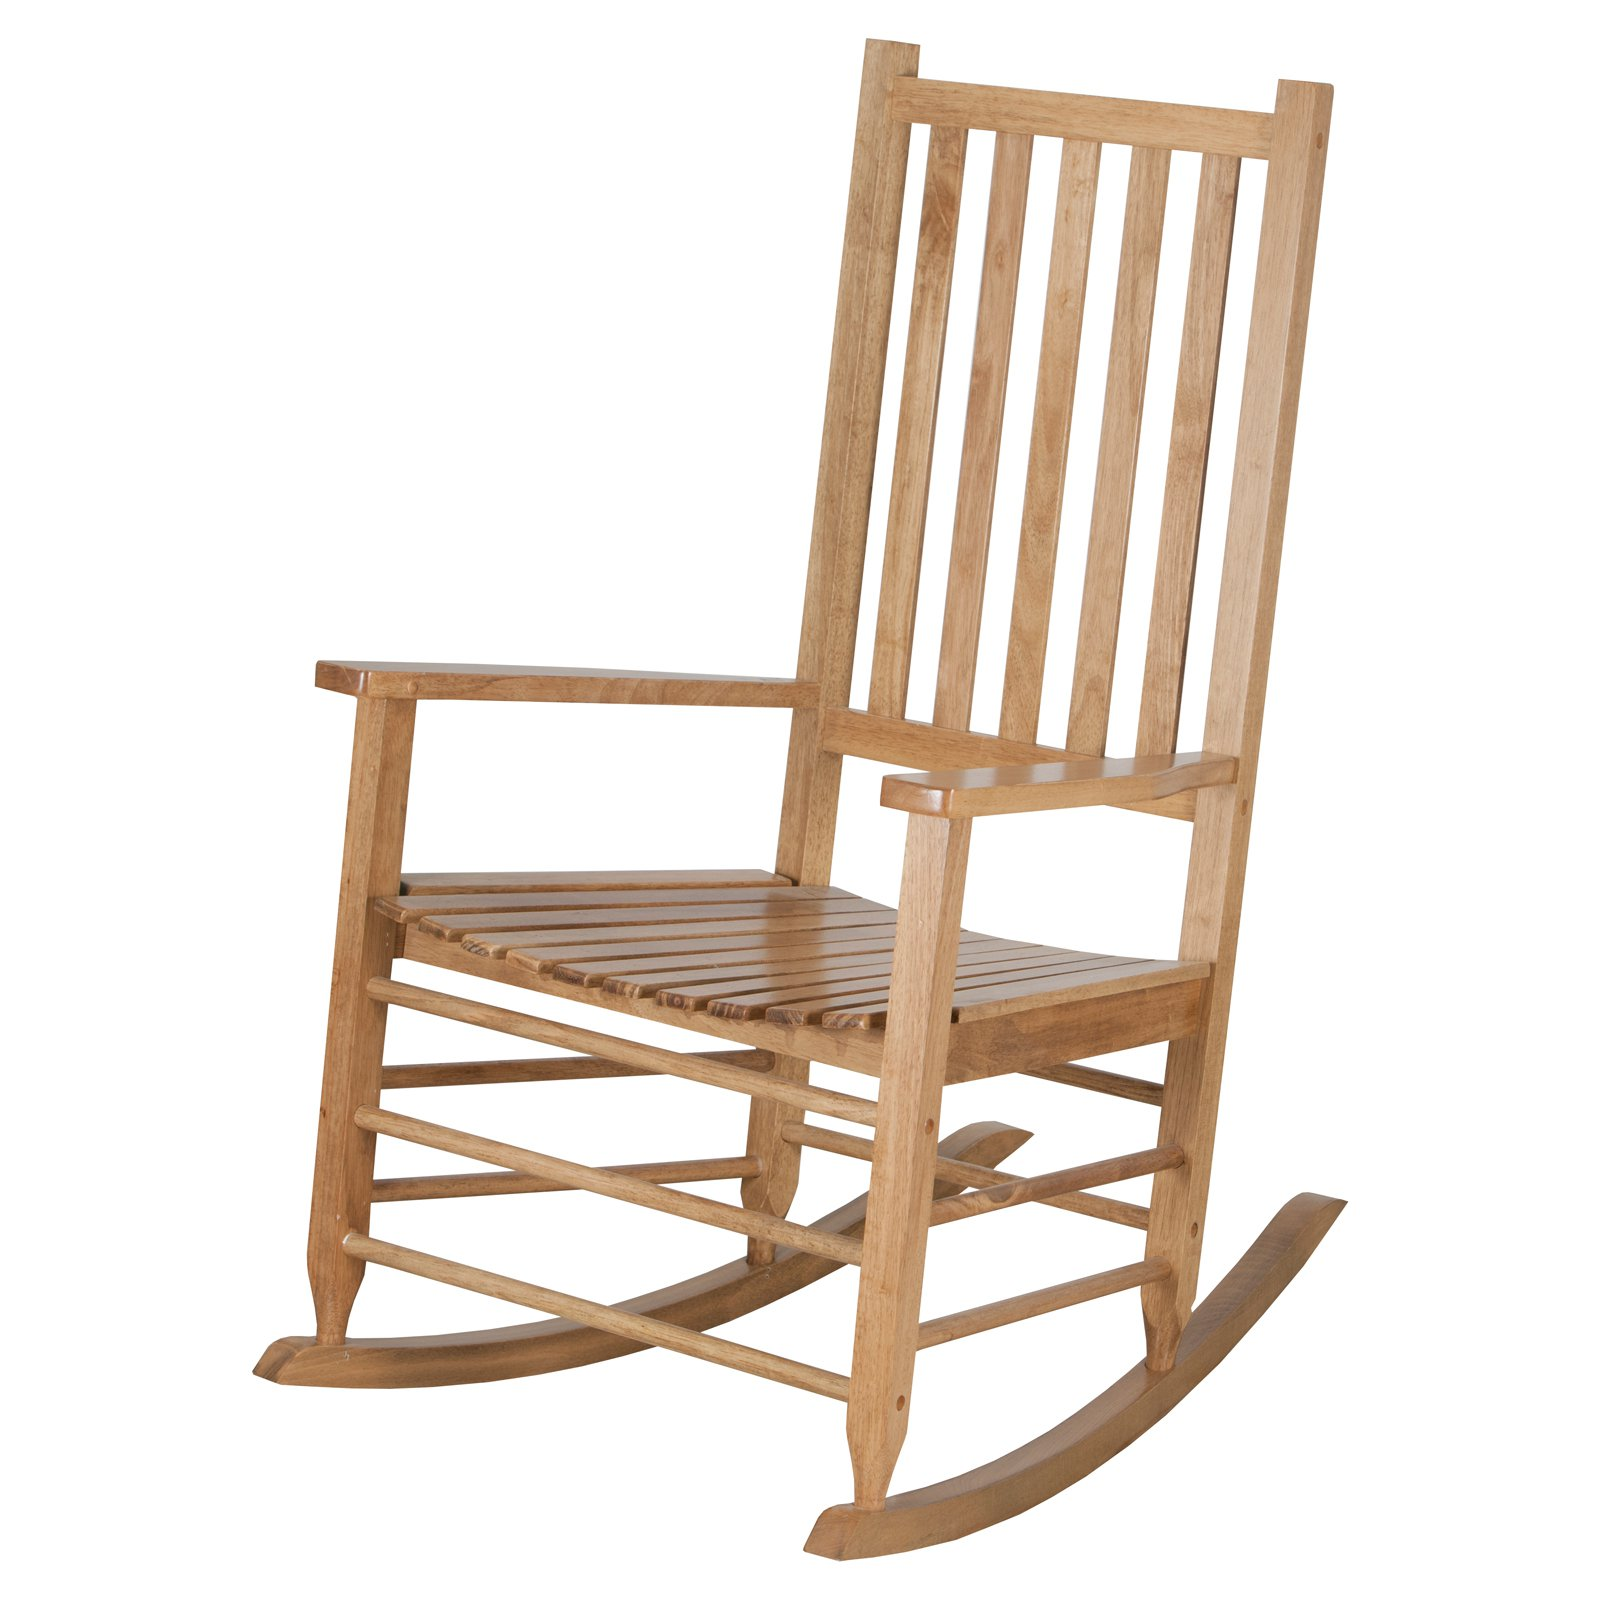 Hinkle Chair Company Alexander Rocking Chair